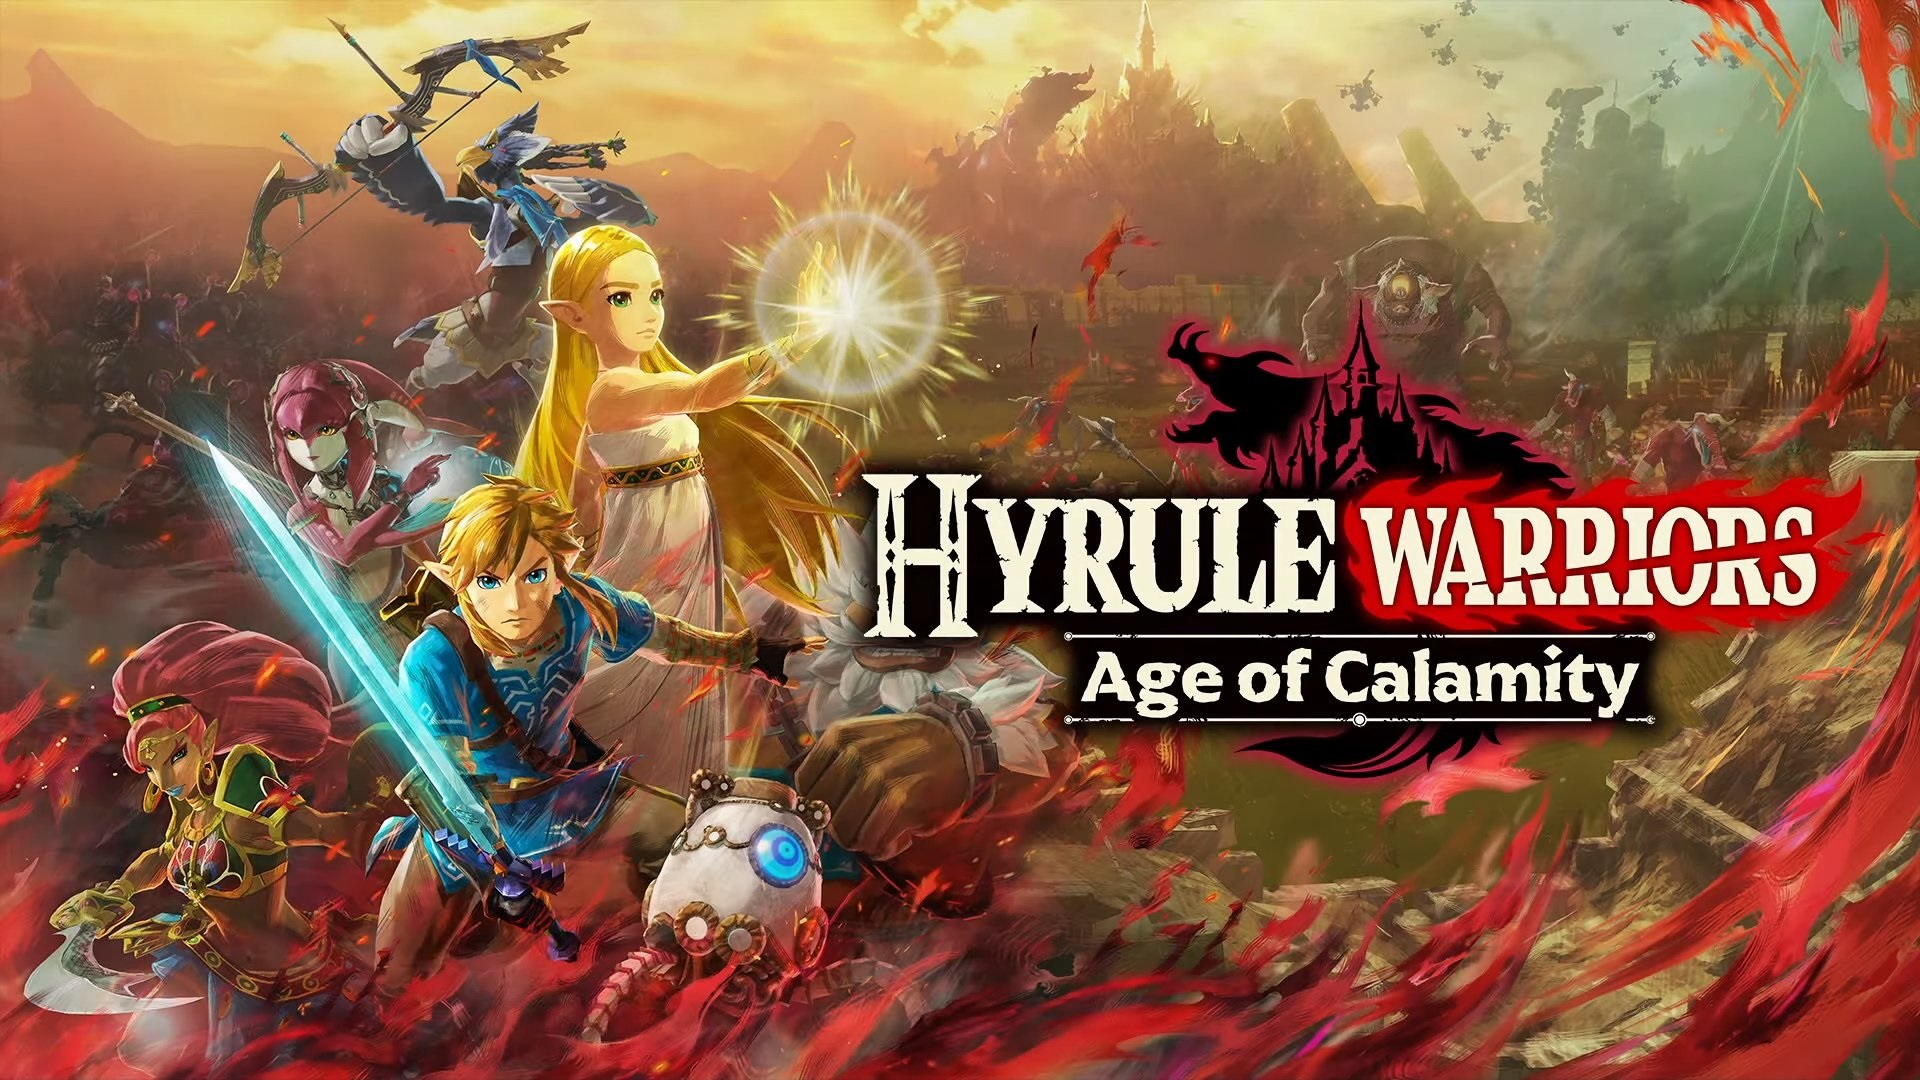 Photo of Hyrule Warriors: Age of Calamity Shows Life Before Breath of the Wild